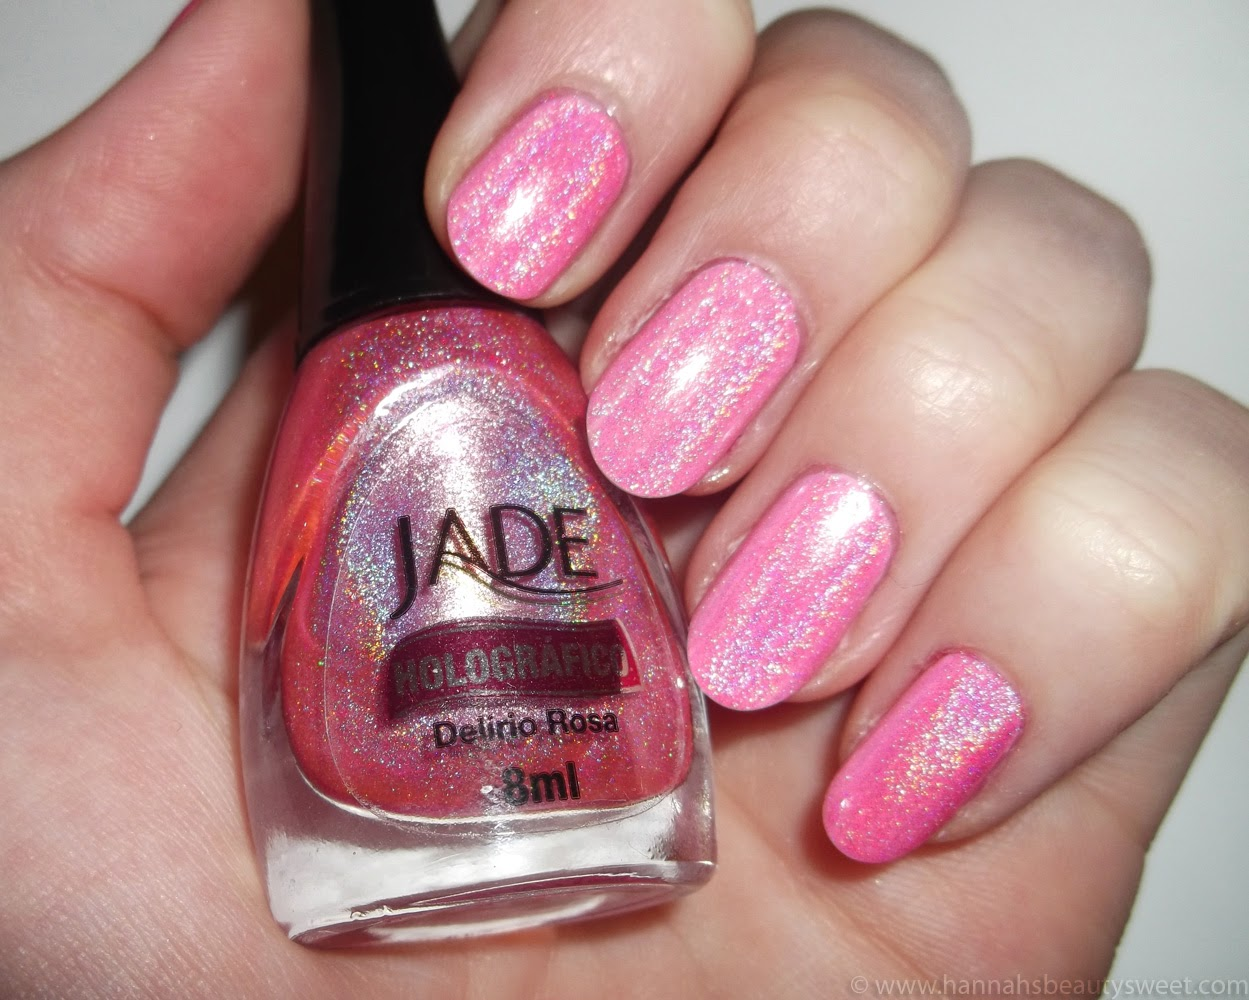 Jade Delirio Rosa, NOTD, holographic nail polish, Delirio Rosa, pretty, cute, girly